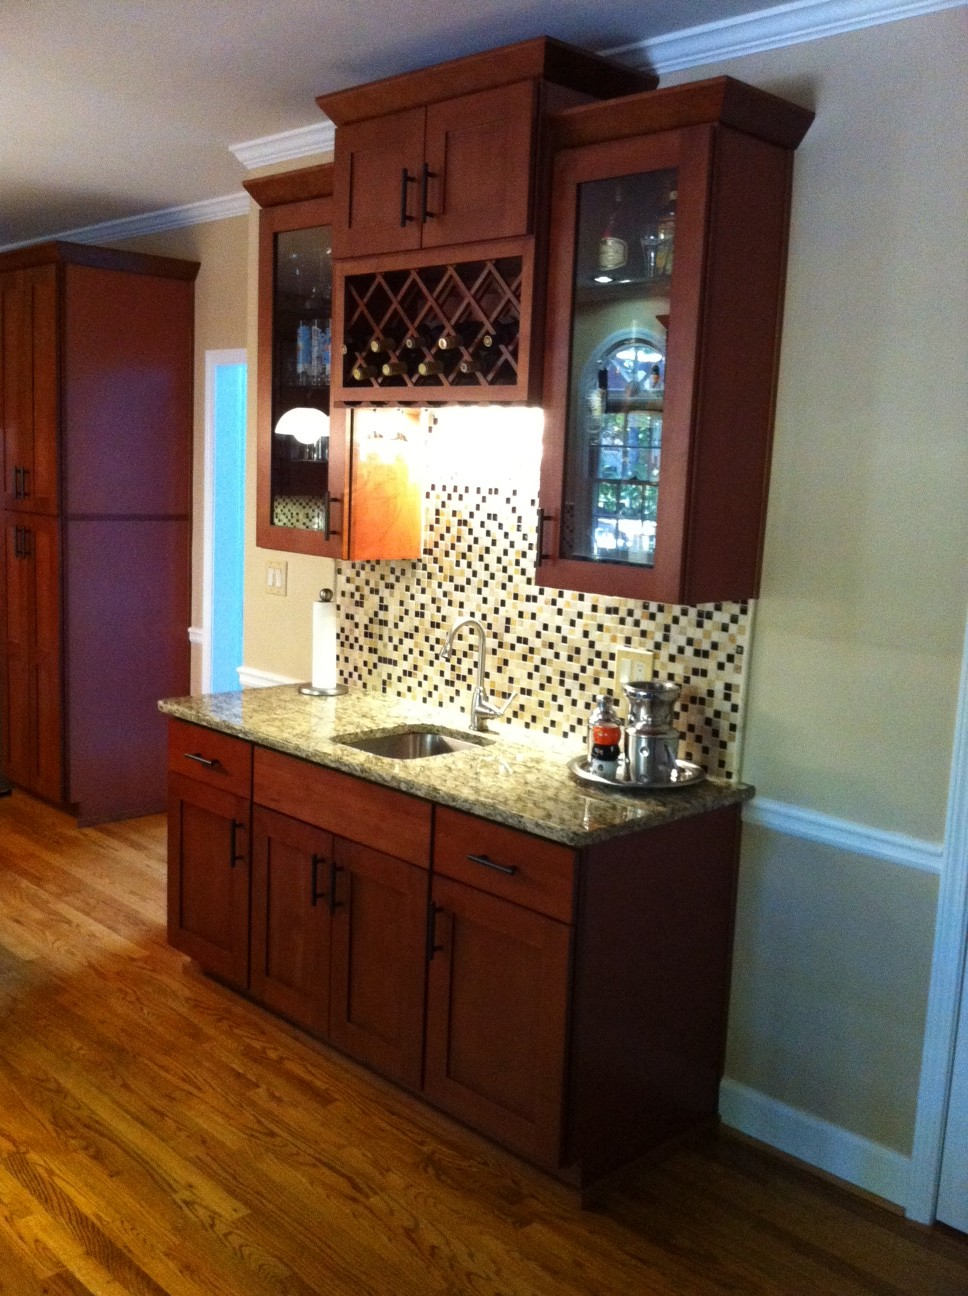 Frugal Kitchens Amp Cabinets Peachtree City Georgia Ga